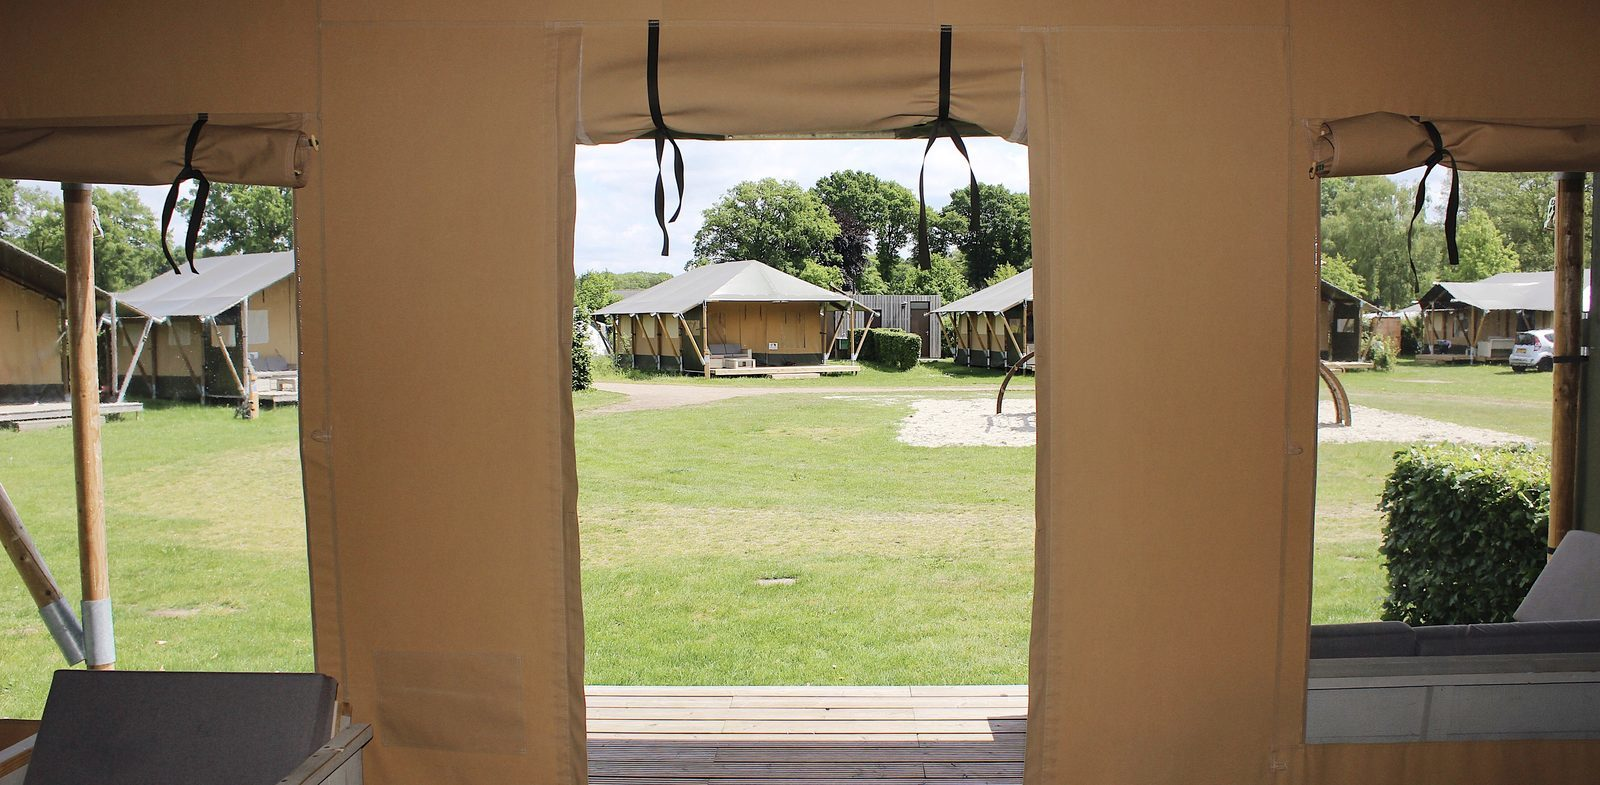 Glampings' Stories #2 Safaricottage De Boshoek